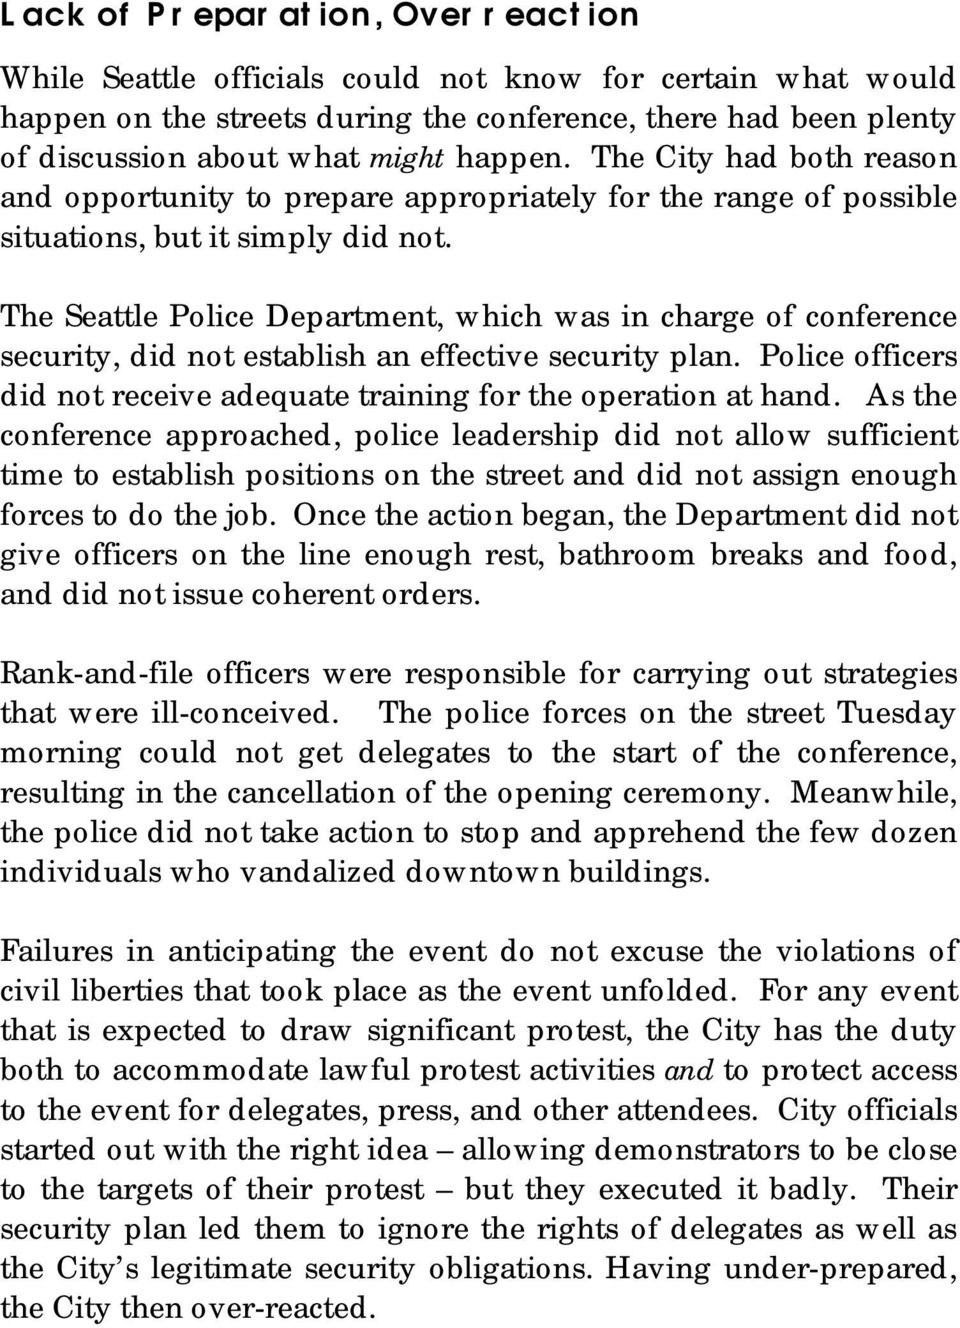 The Seattle Police Department, which was in charge of conference security, did not establish an effective security plan. Police officers did not receive adequate training for the operation at hand.